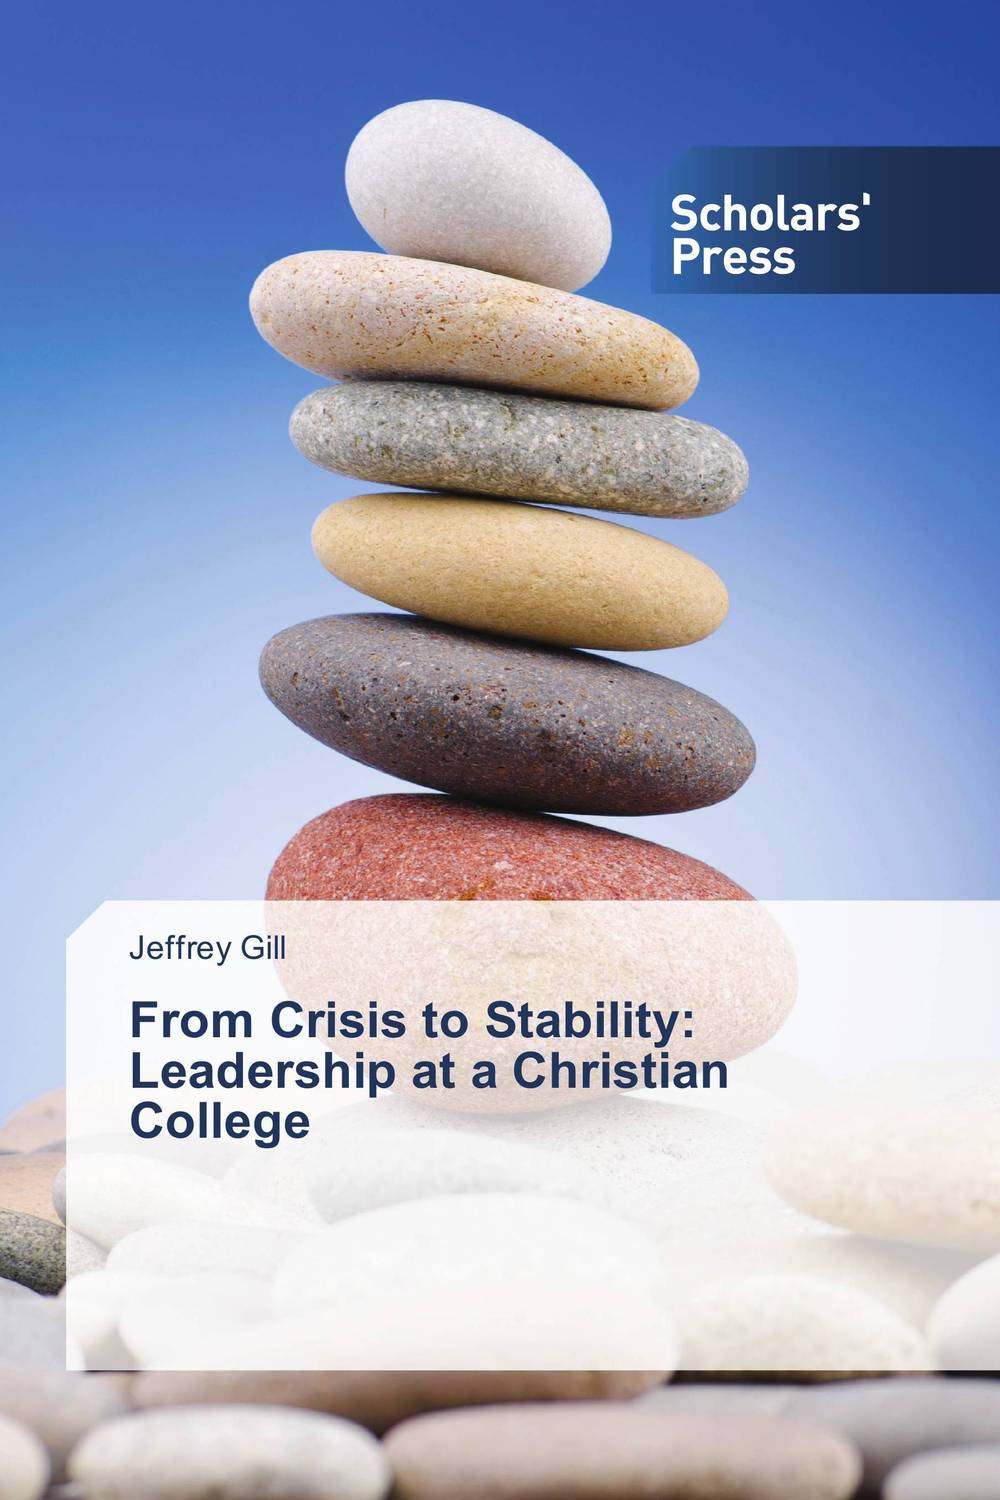 From Crisis to Stability: Leadership at a Christian College лопатка кулинарная marmiton цвет розовый бледно розовый длина 25 см